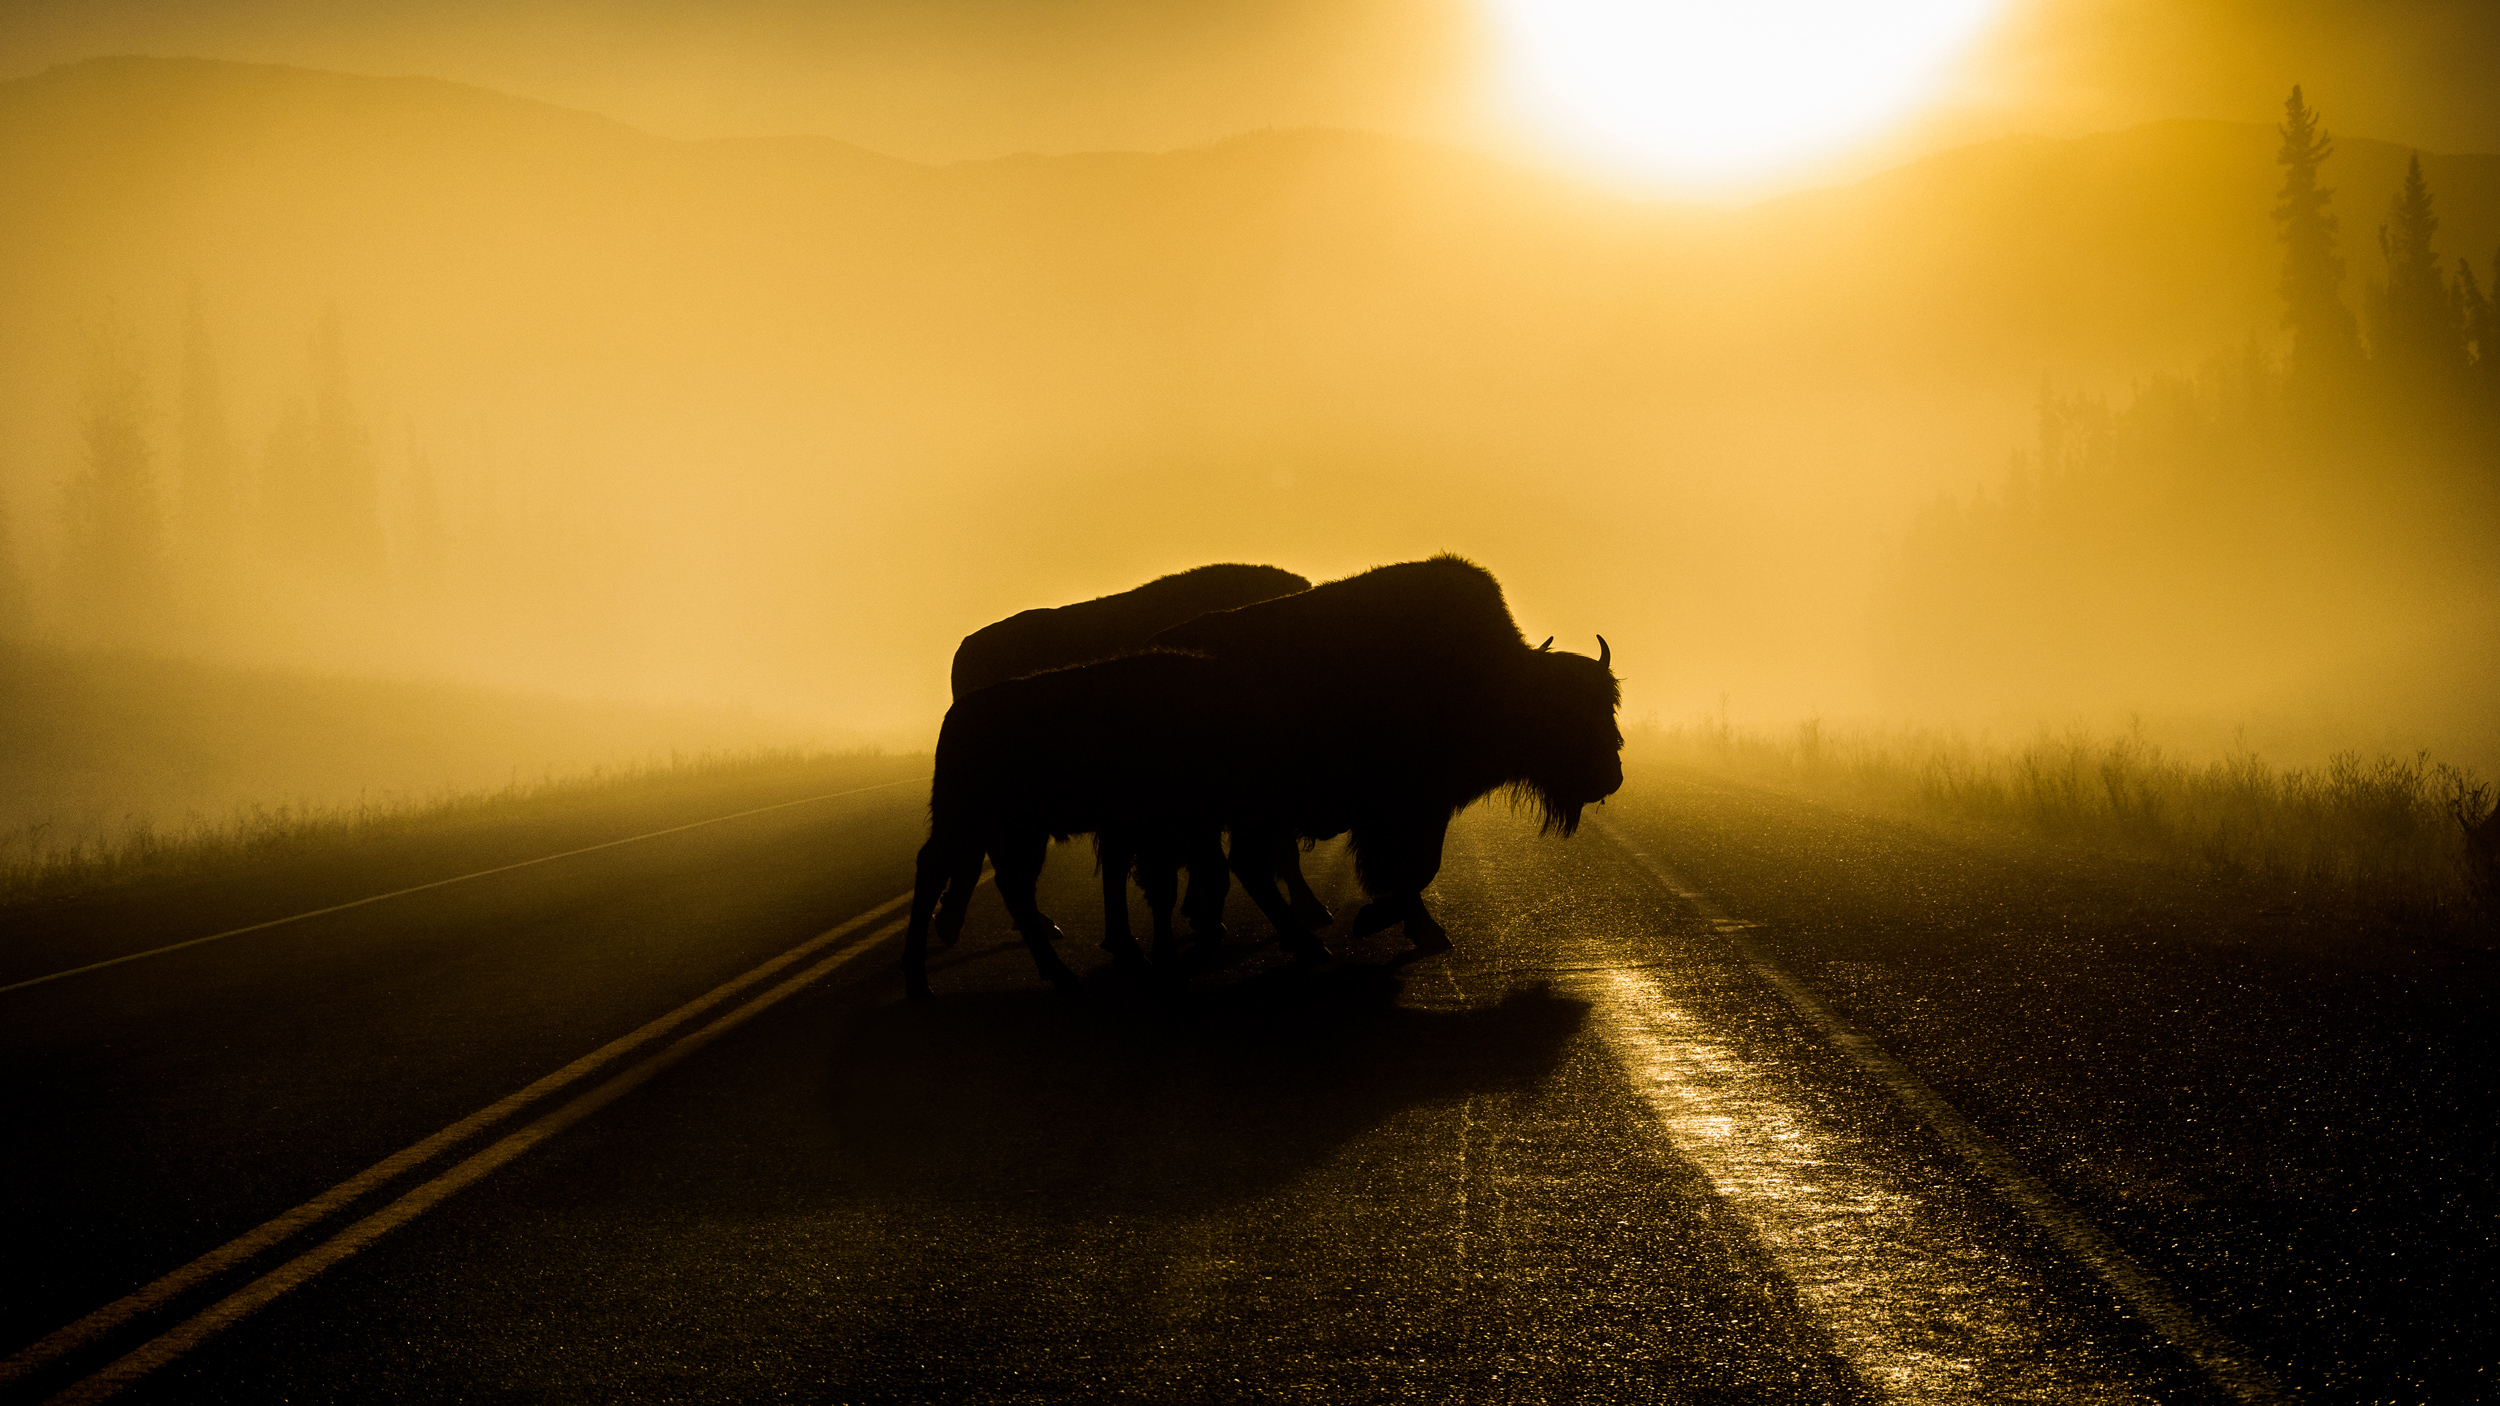 Morning-Commuters-Bison-Family.web.jpg